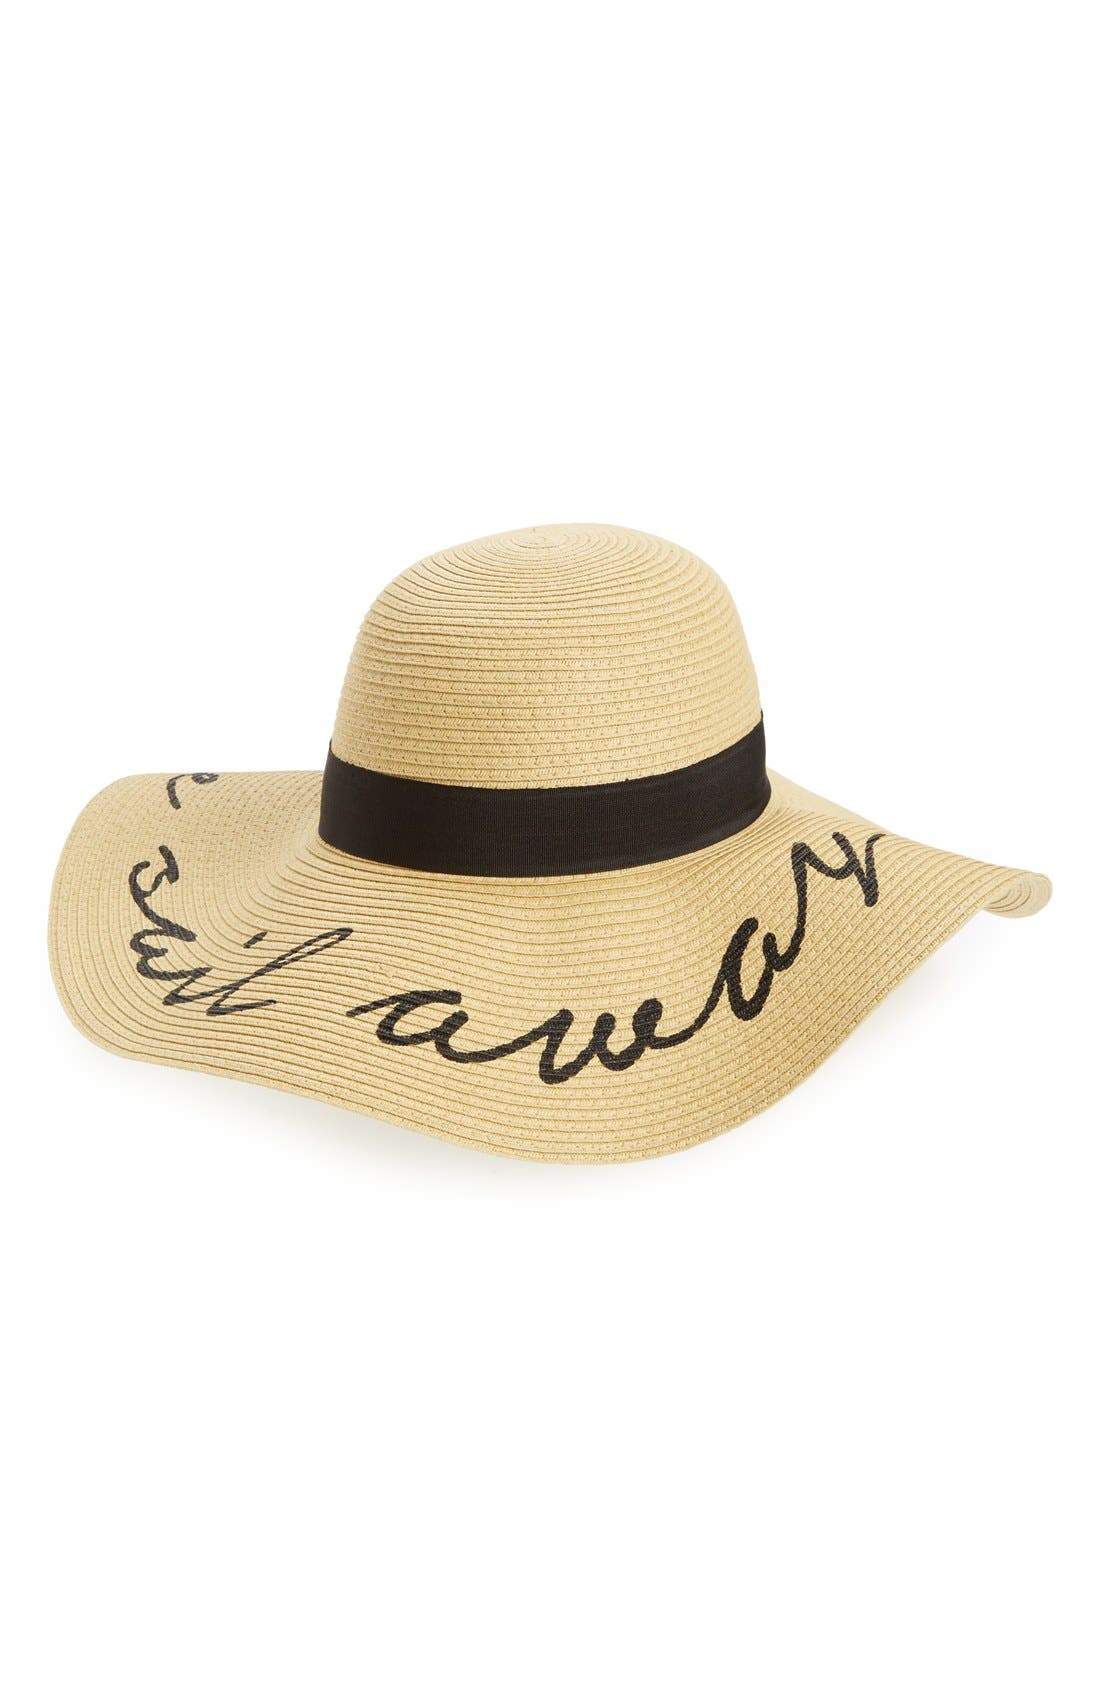 'Come Sail Away' Floppy Straw Hat,                             Main thumbnail 1, color,                             285